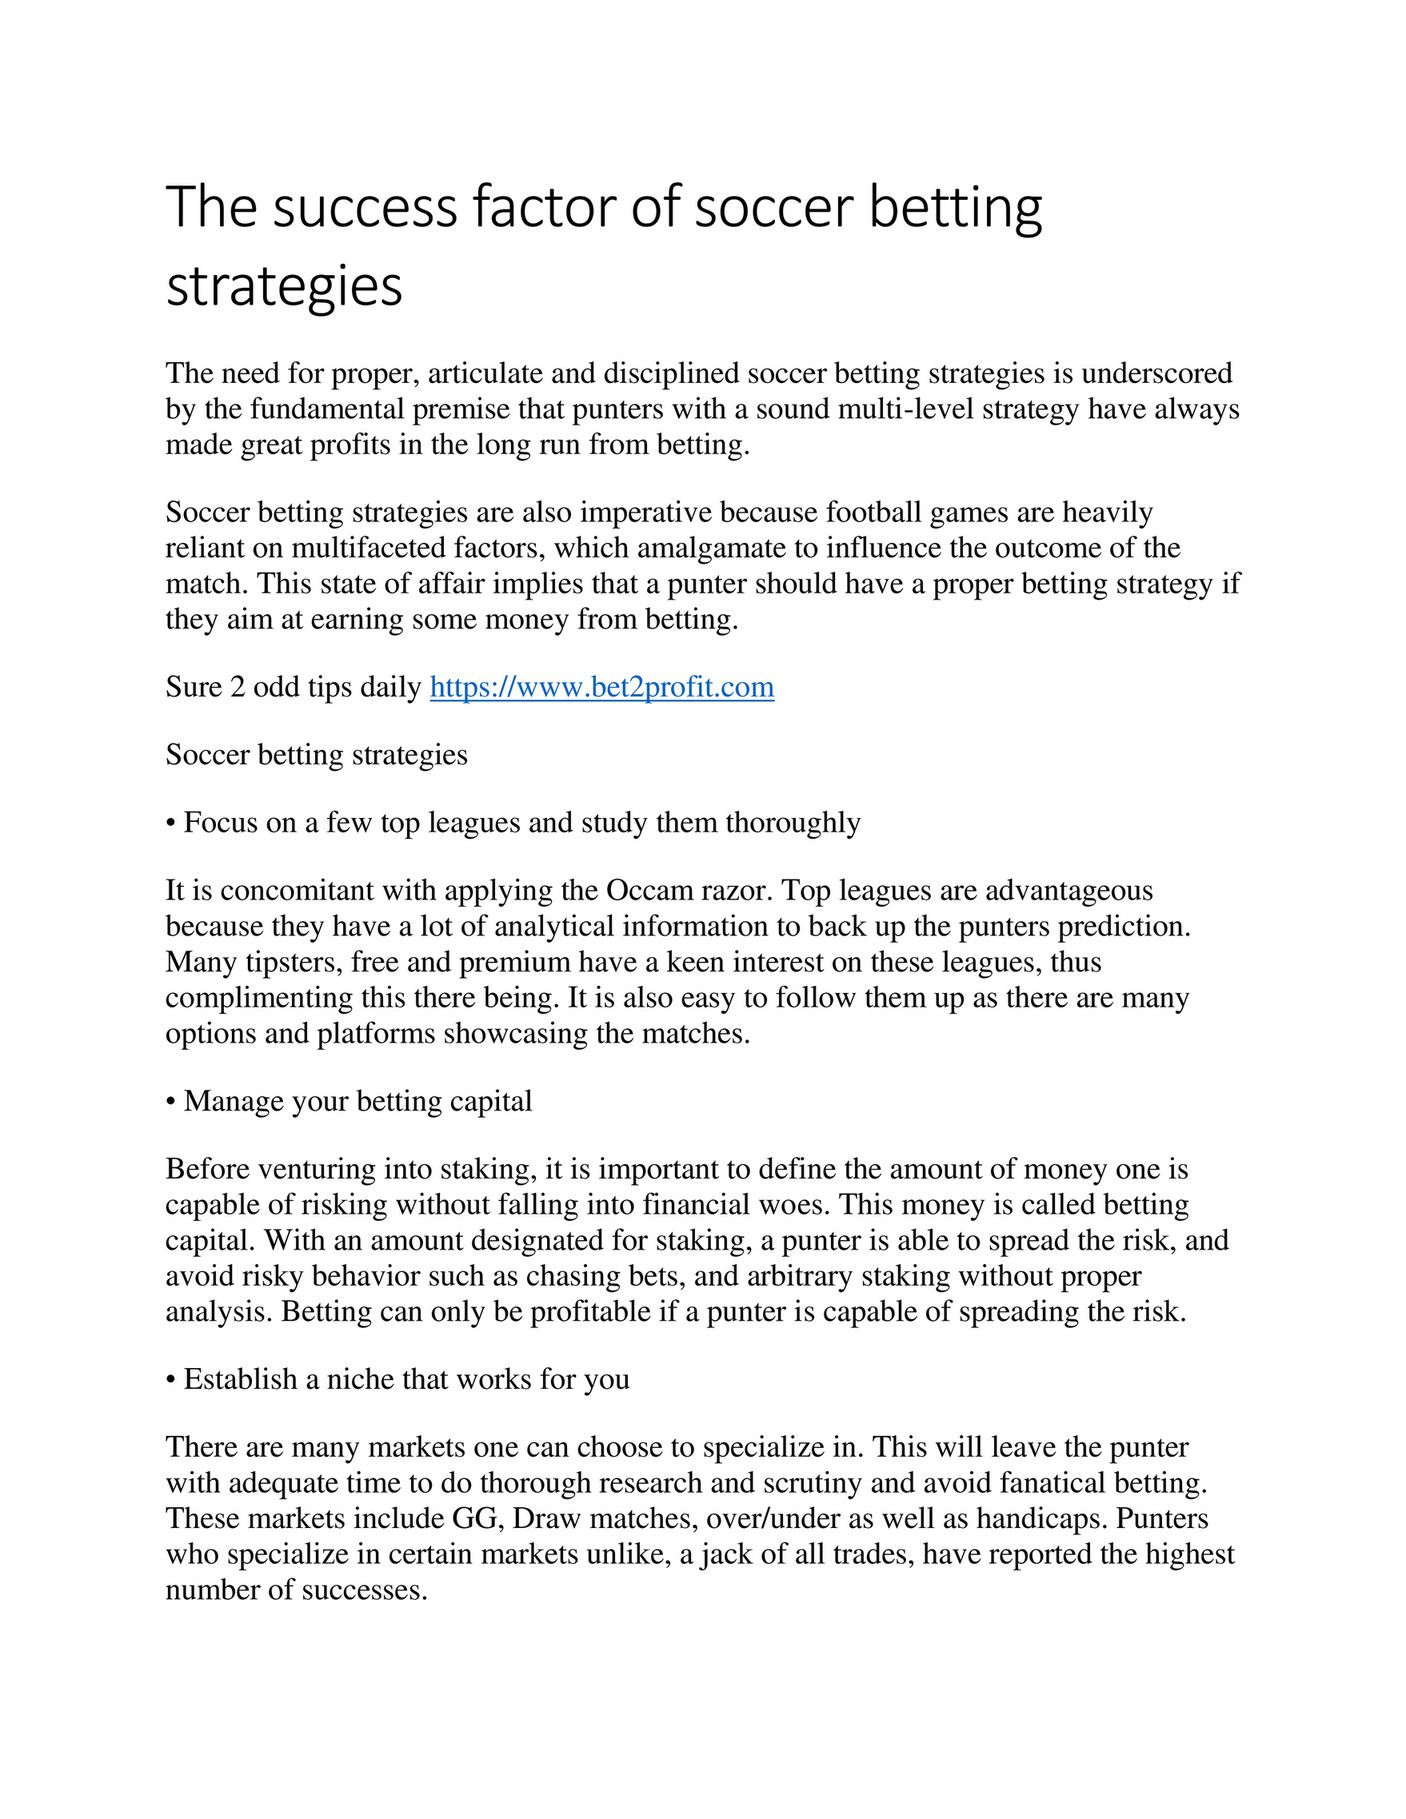 My publications - The success factor of soccer betting